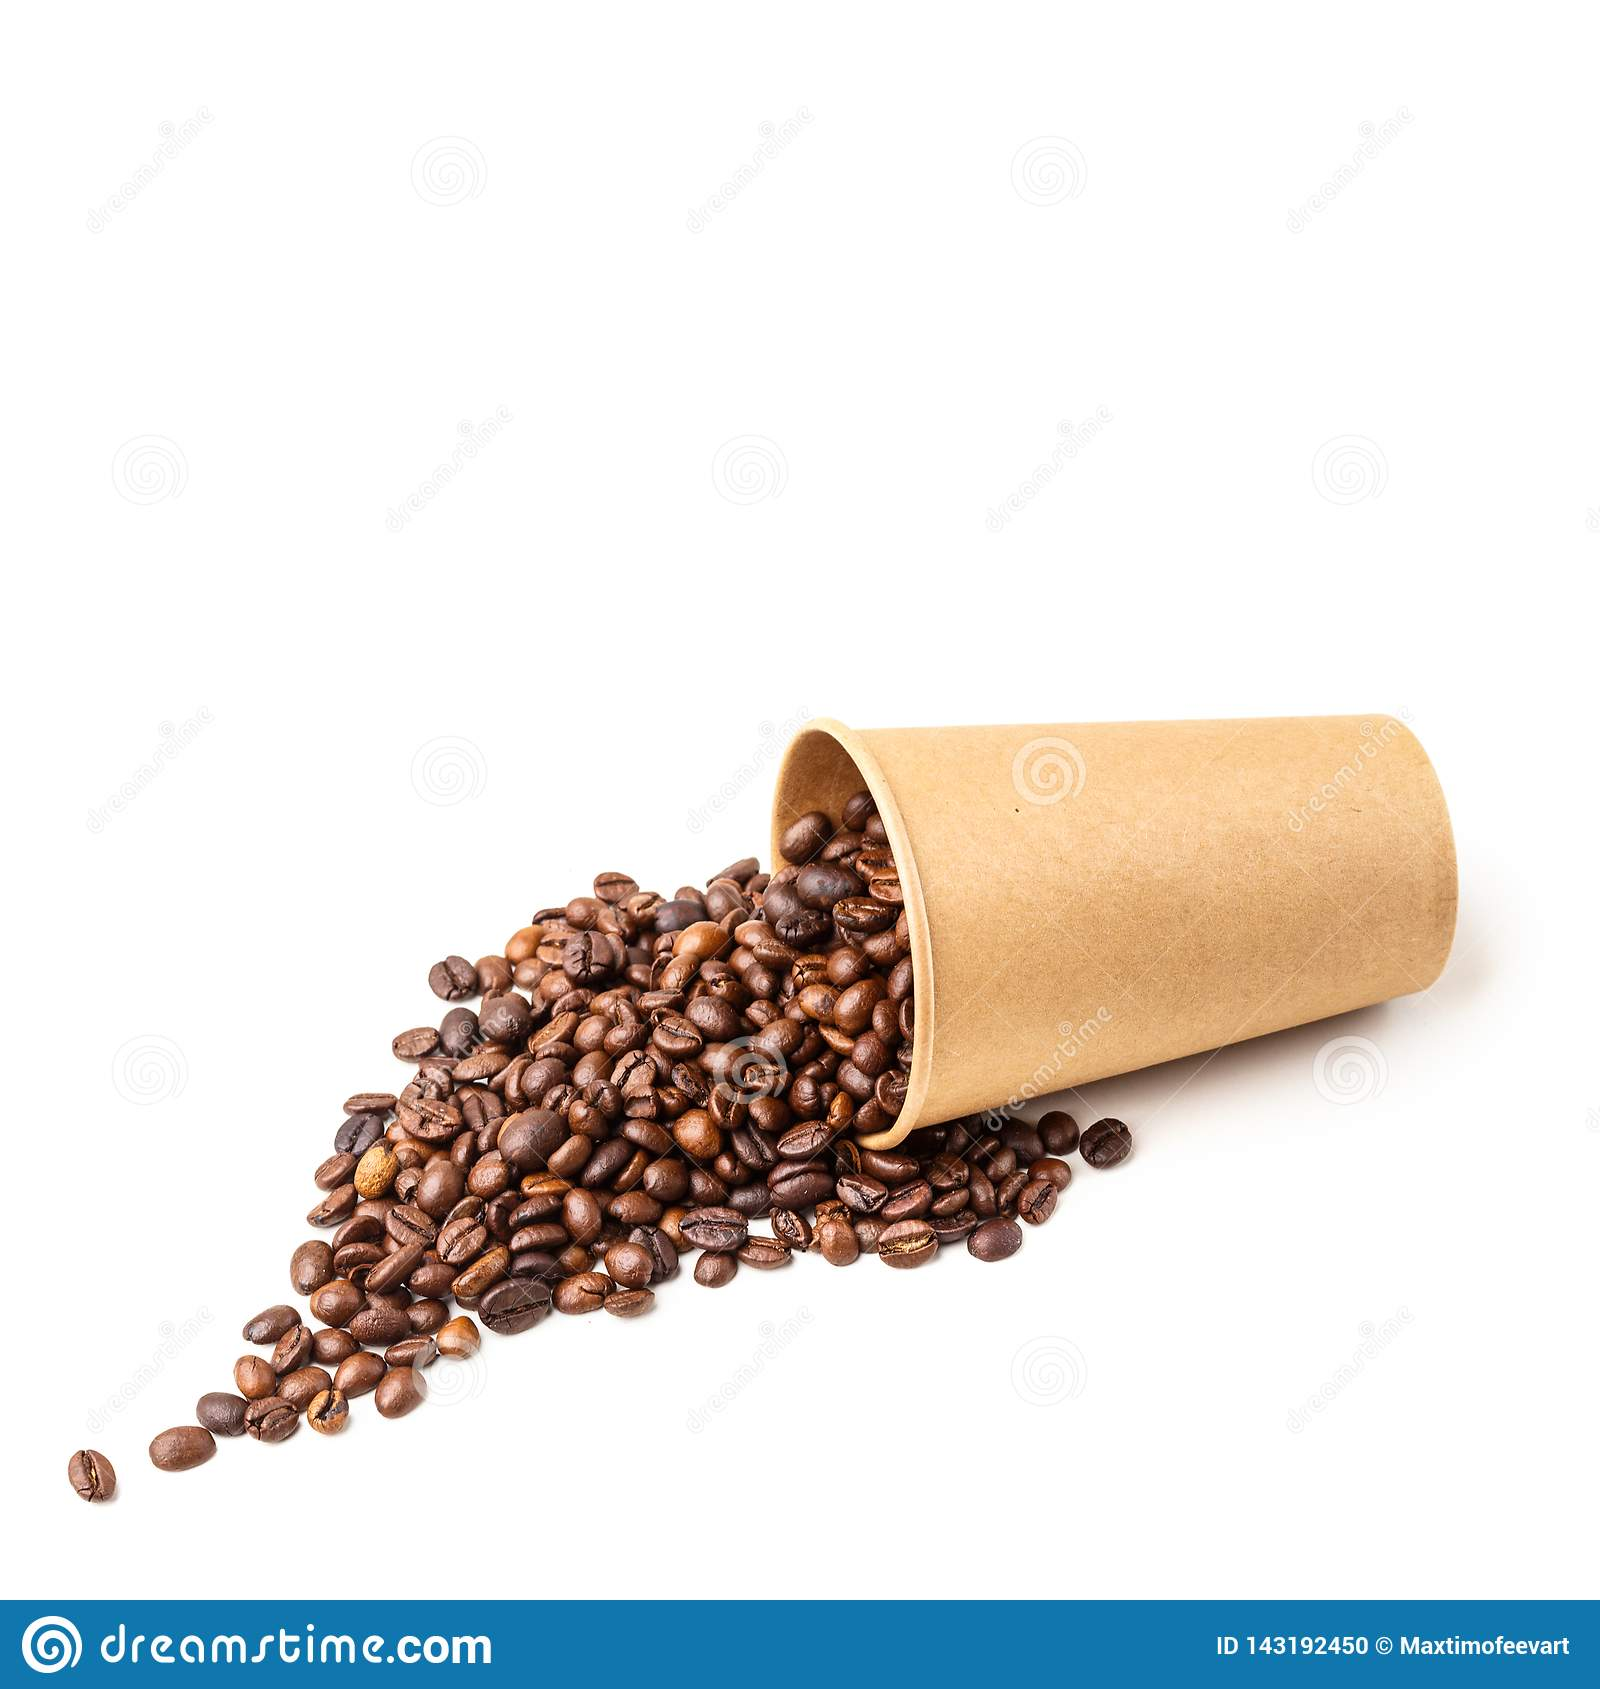 Cardboard cup filled with coffee beans. Isolated